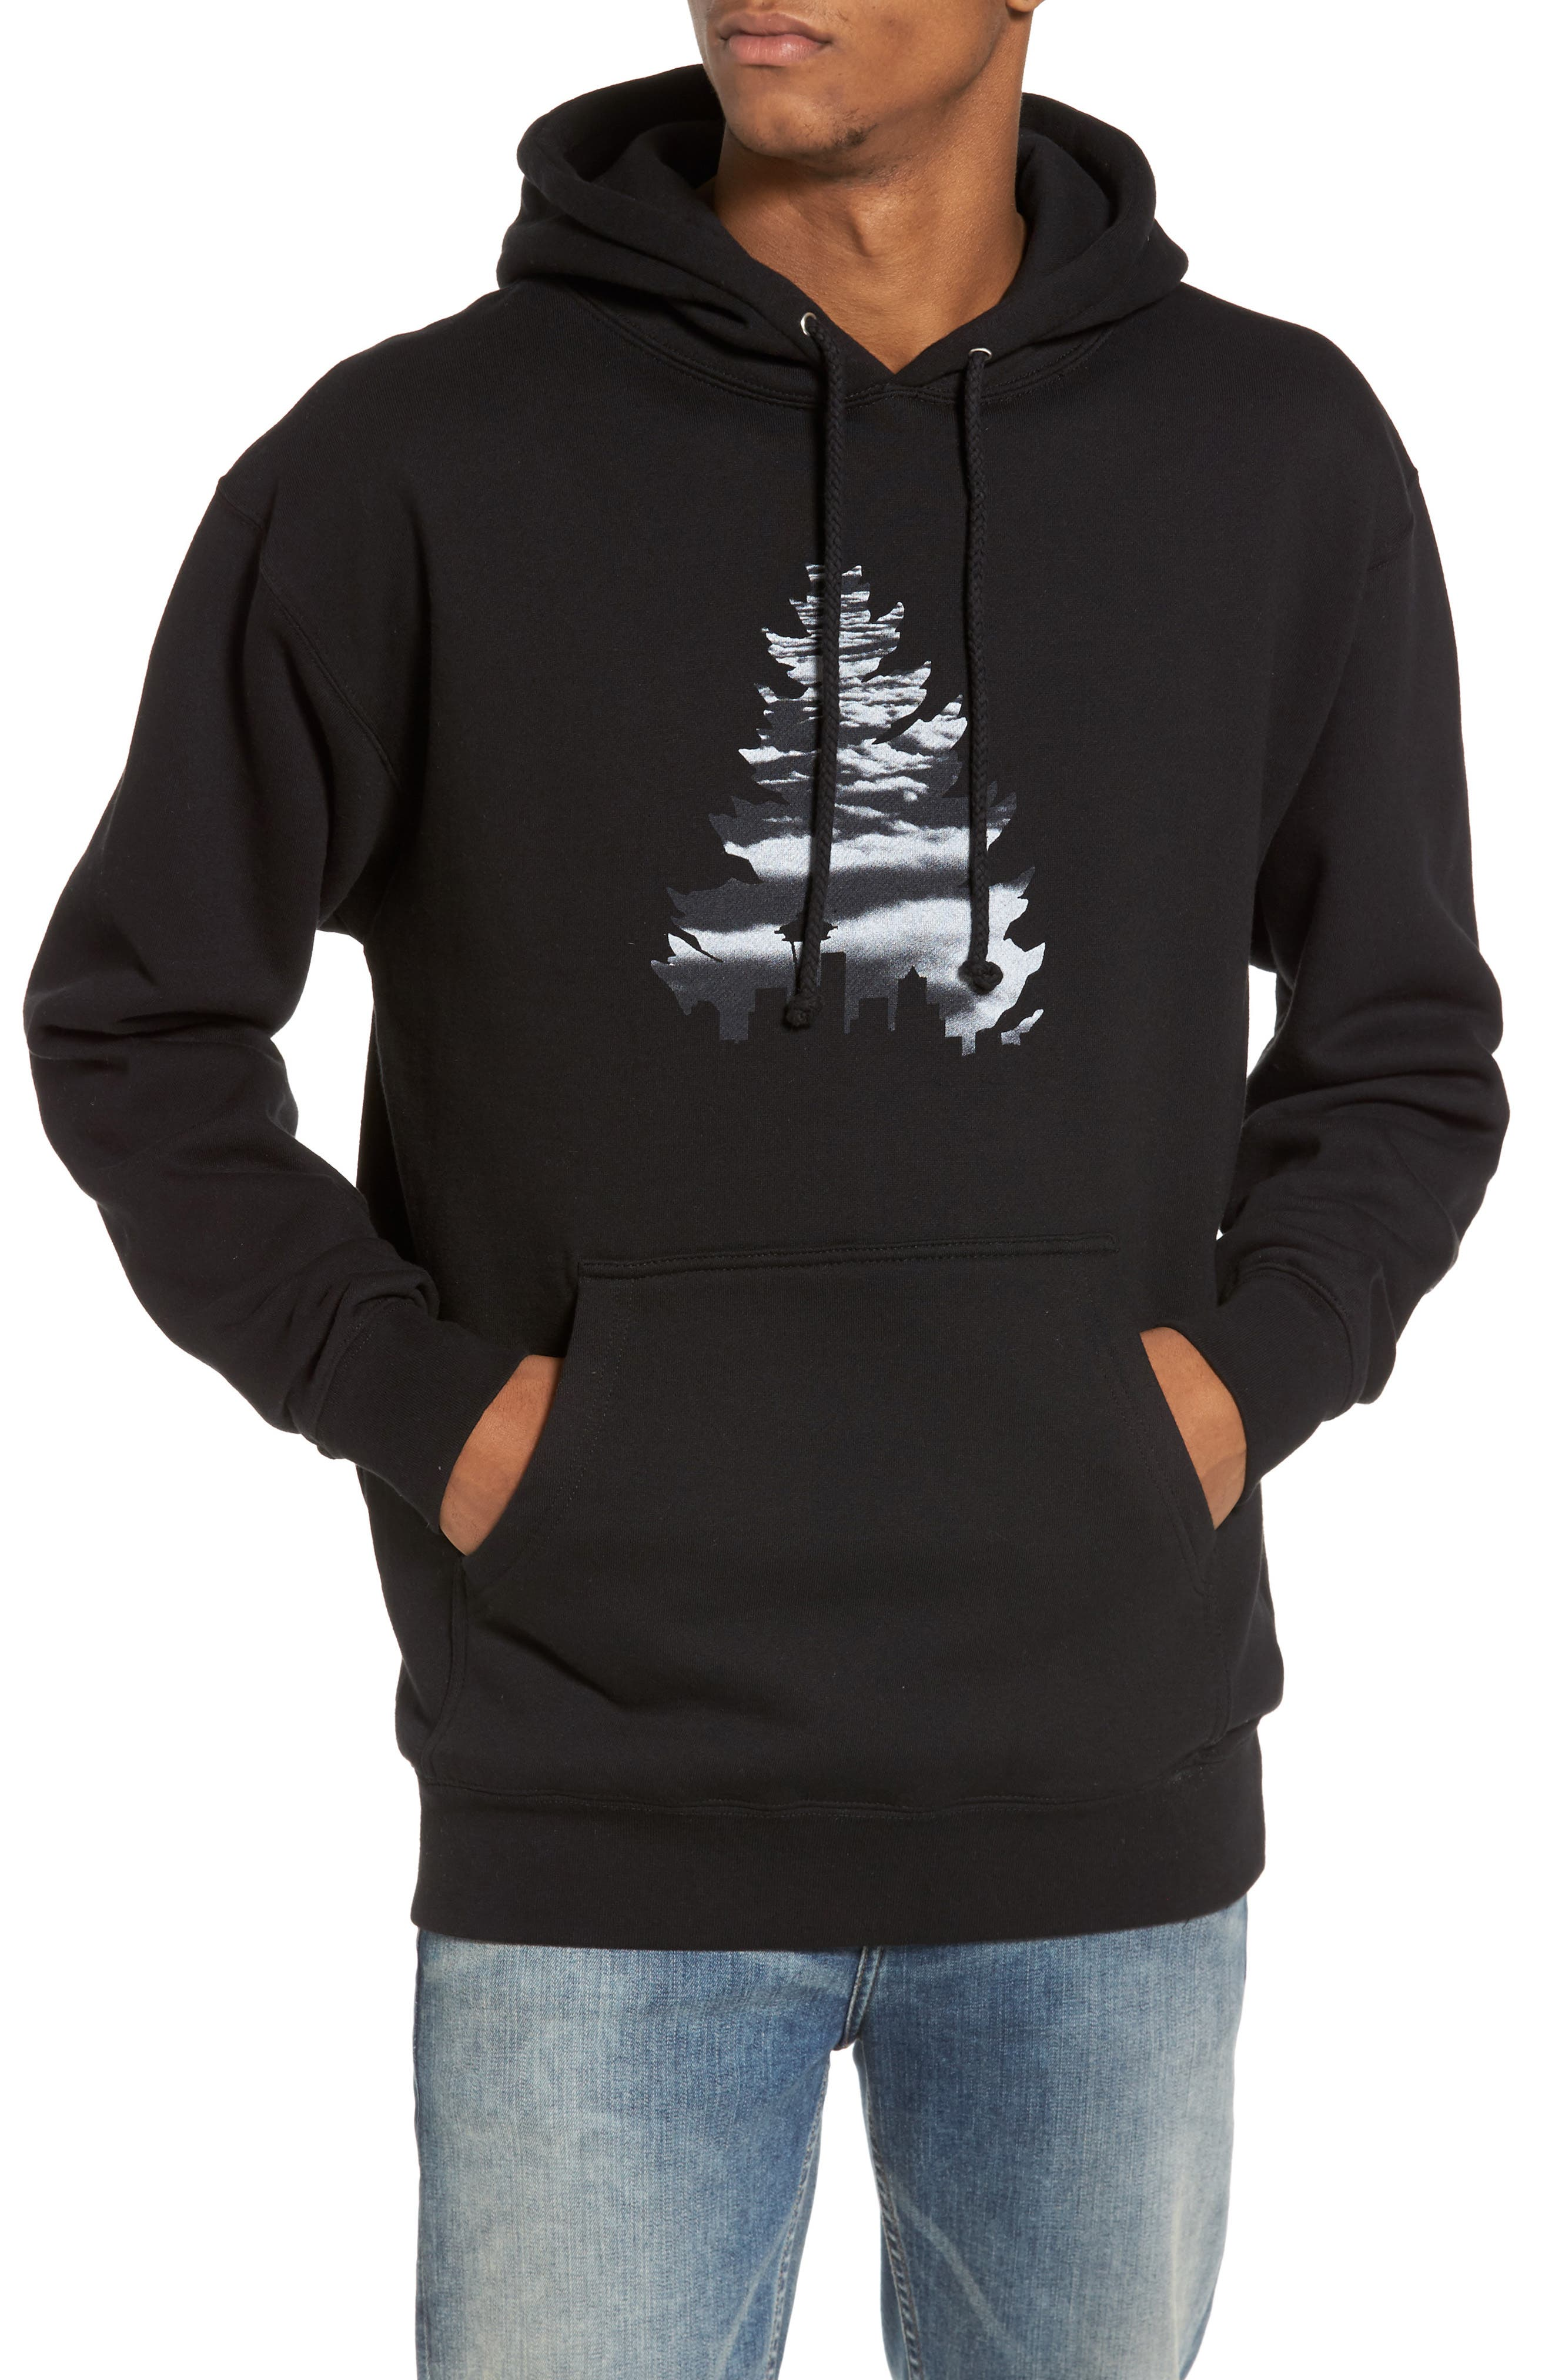 Johnny Tree above the Clouds Hoodie,                         Main,                         color, Black